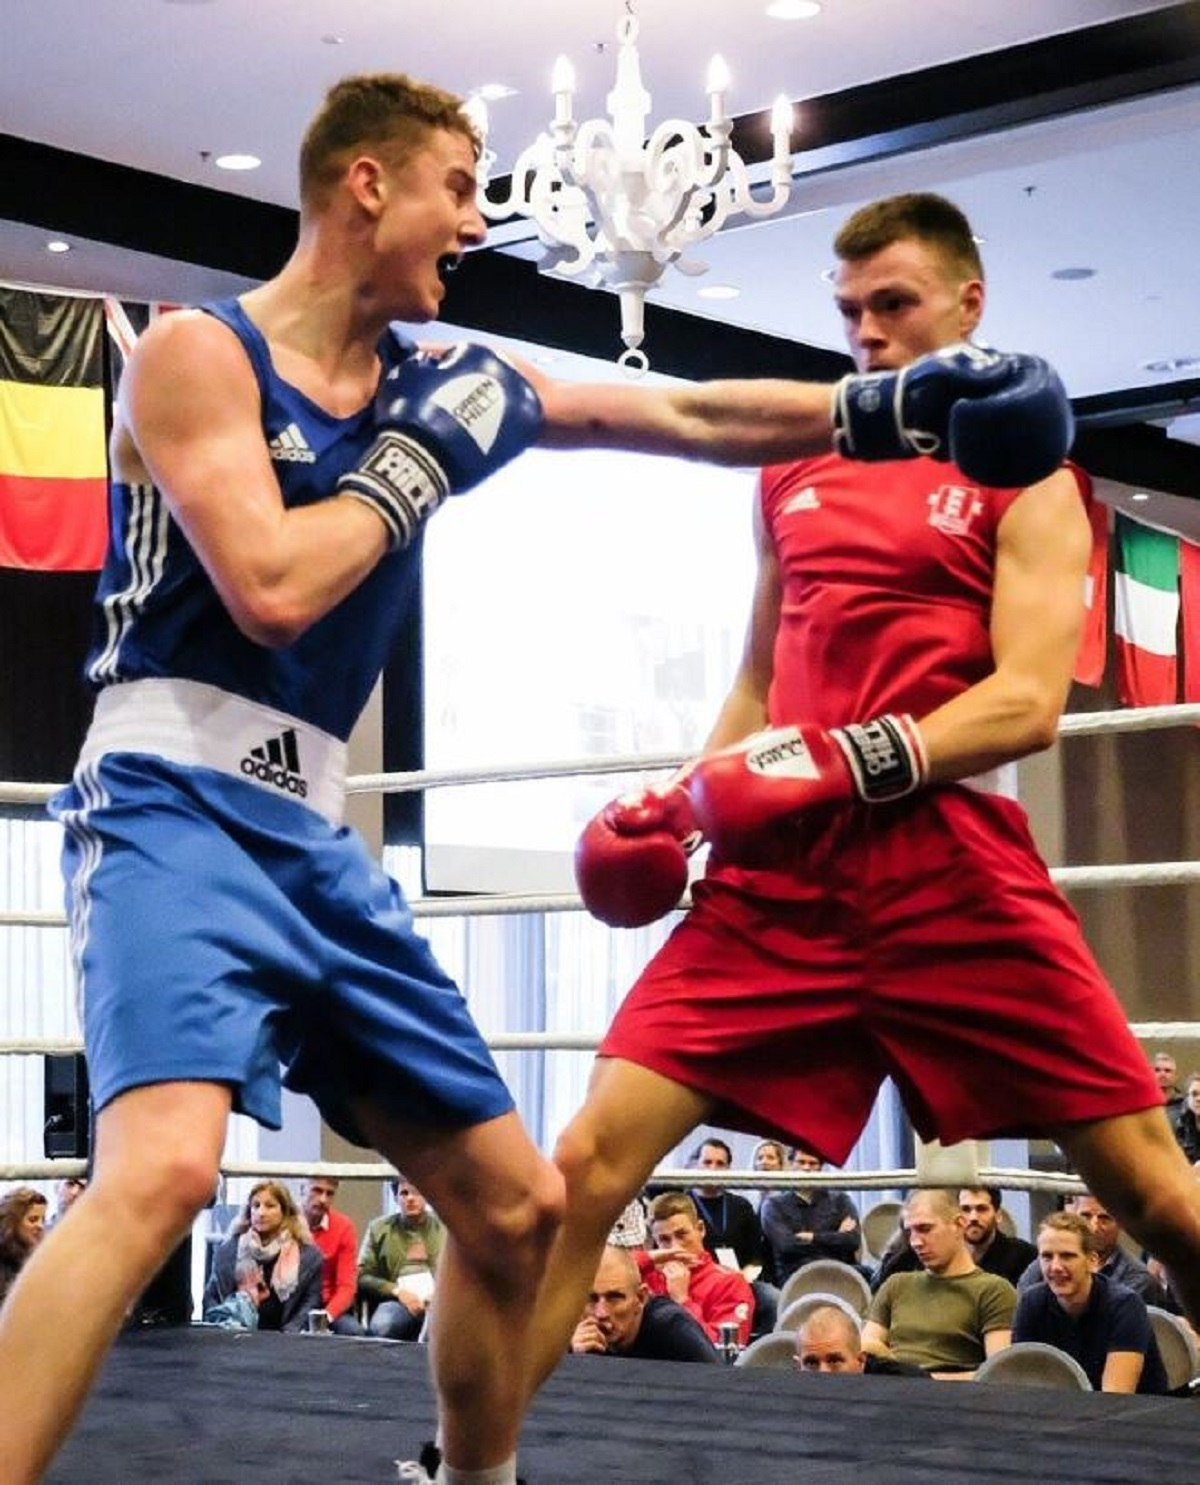 Talent - Lewis Richardson (red vest) on his way to beating Lydney's Liam O'Hare in his NABC semi-final